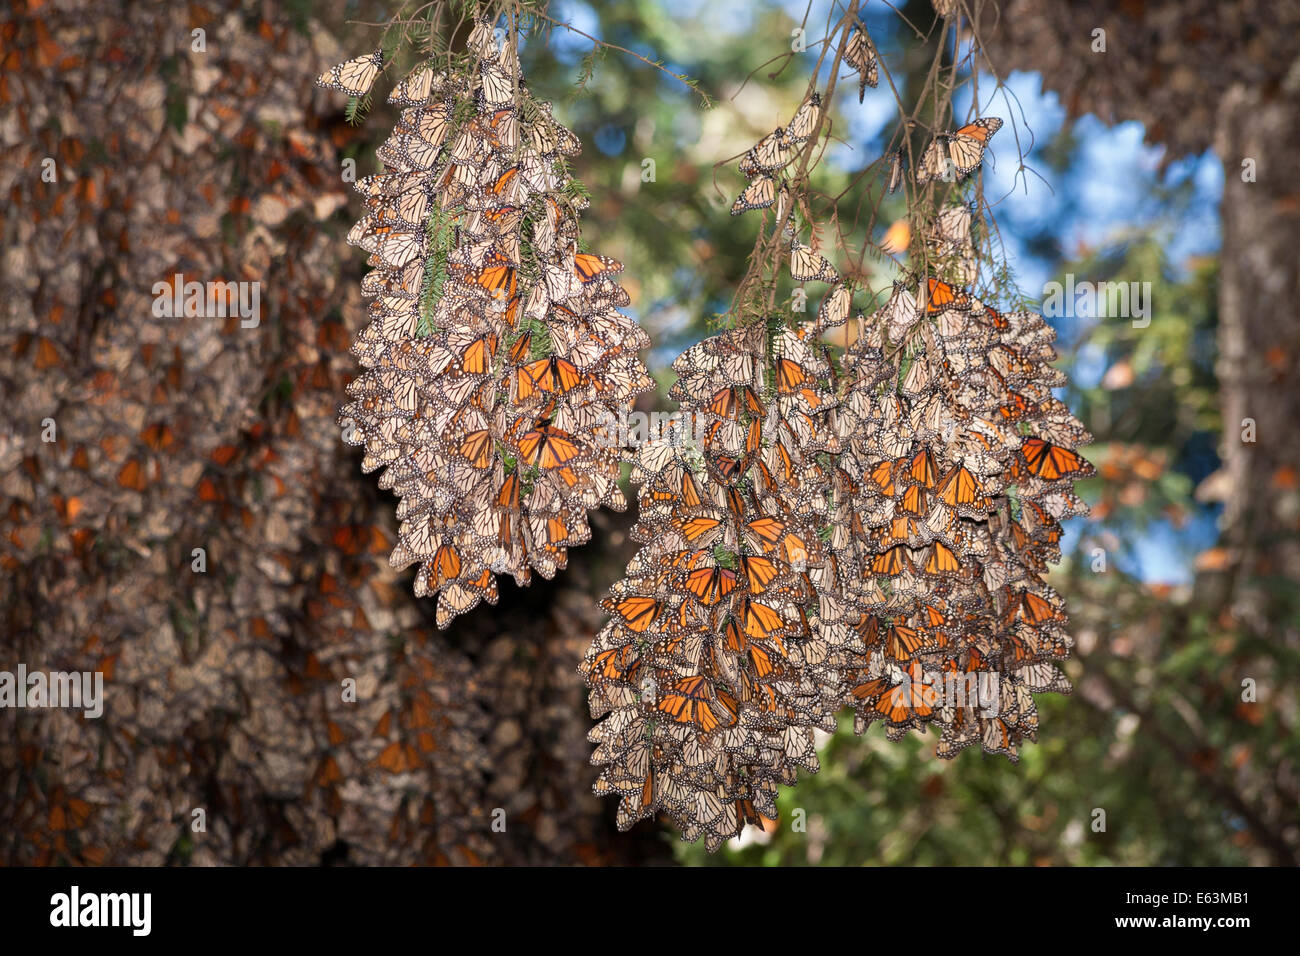 Monarch butterfly migration tree - photo#41